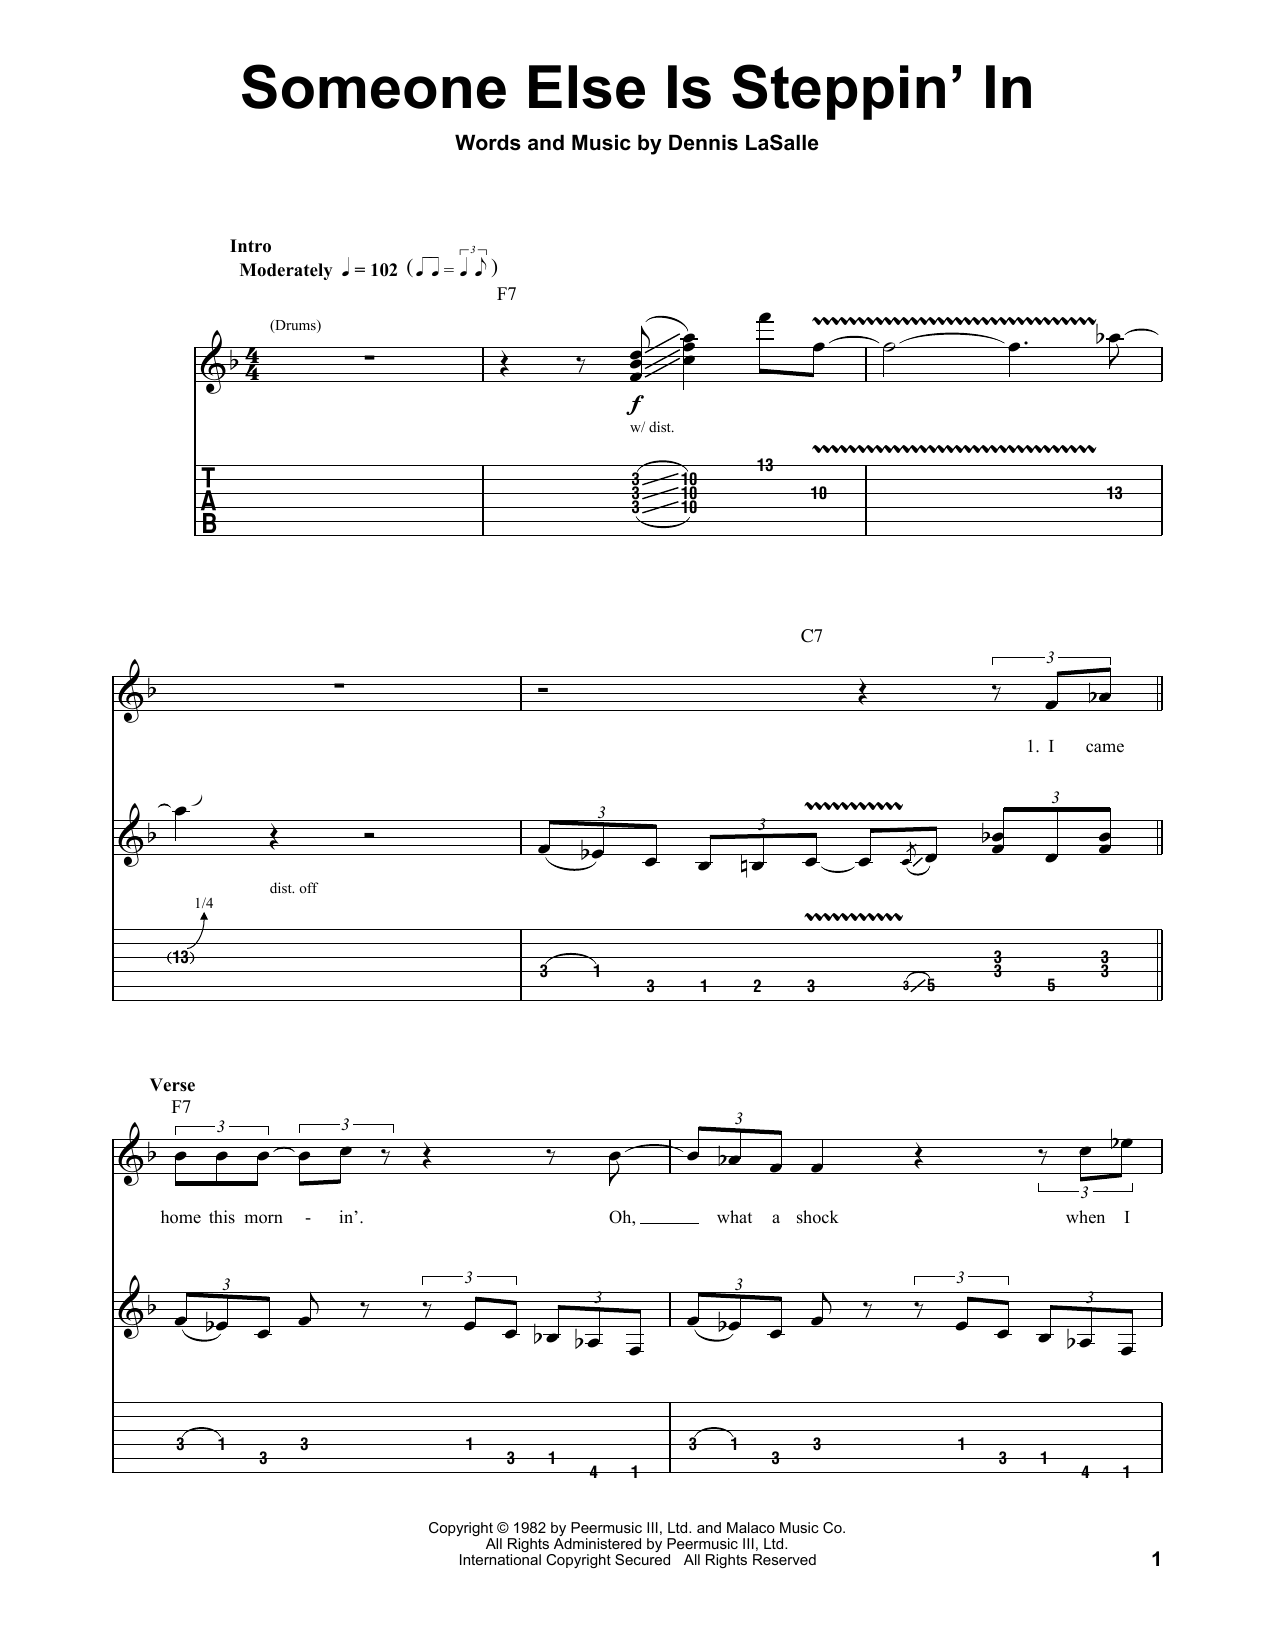 Buddy Guy Someone Else Is Steppin' In sheet music notes and chords. Download Printable PDF.